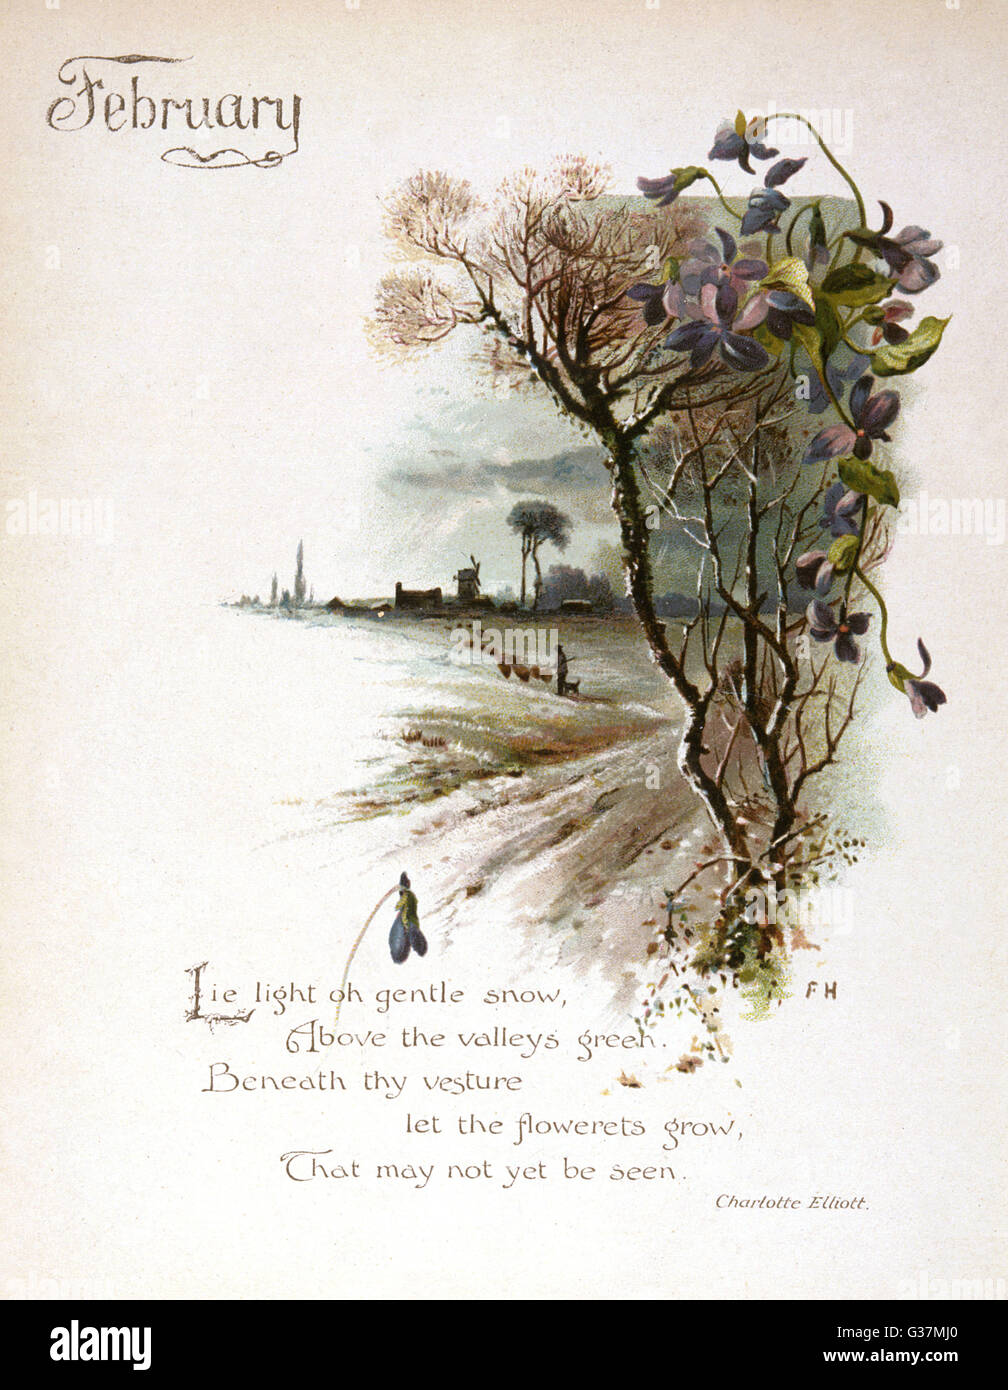 Book illustration -- February, with a snowy country scene.      Date: circa 1880 - Stock Image